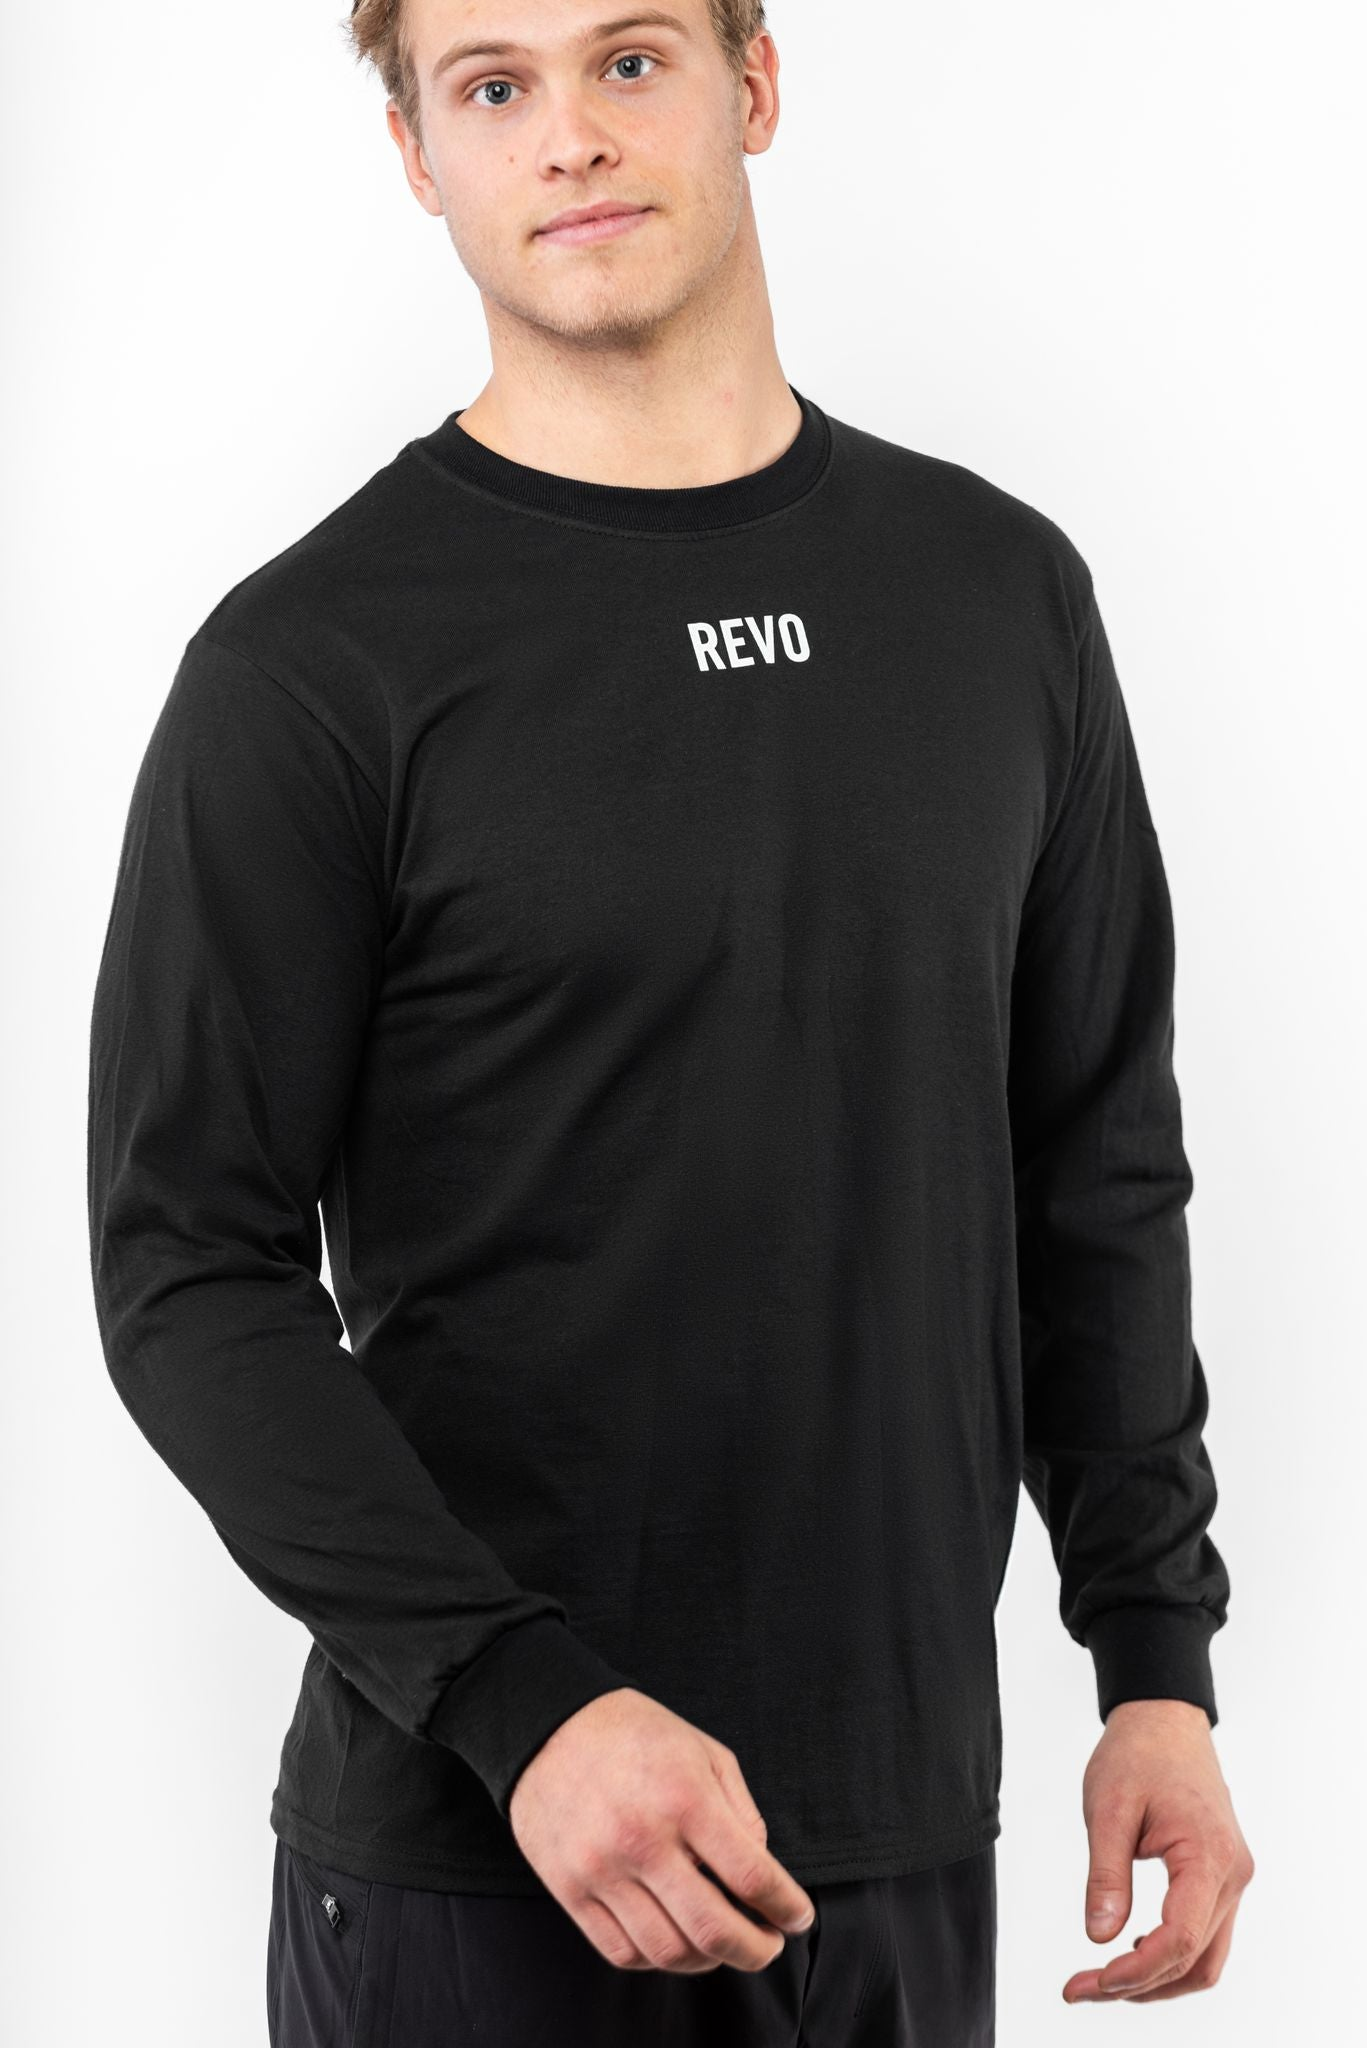 Long Sleeve Shirt - Unisex